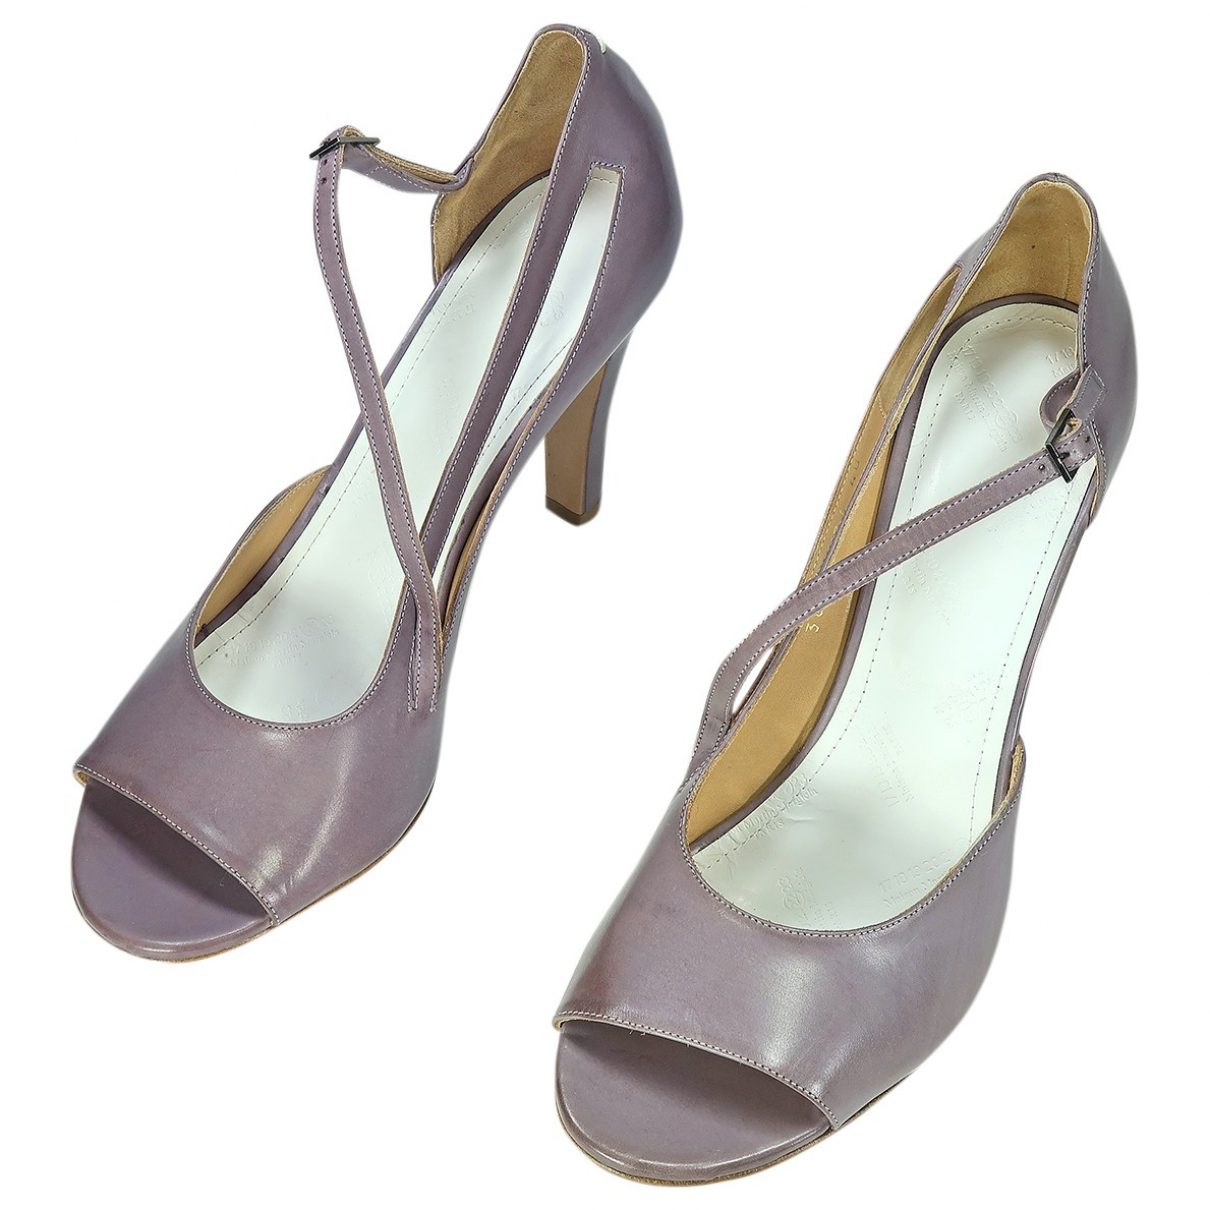 Maison Martin Margiela N Purple Leather Sandals for Women 40 EU